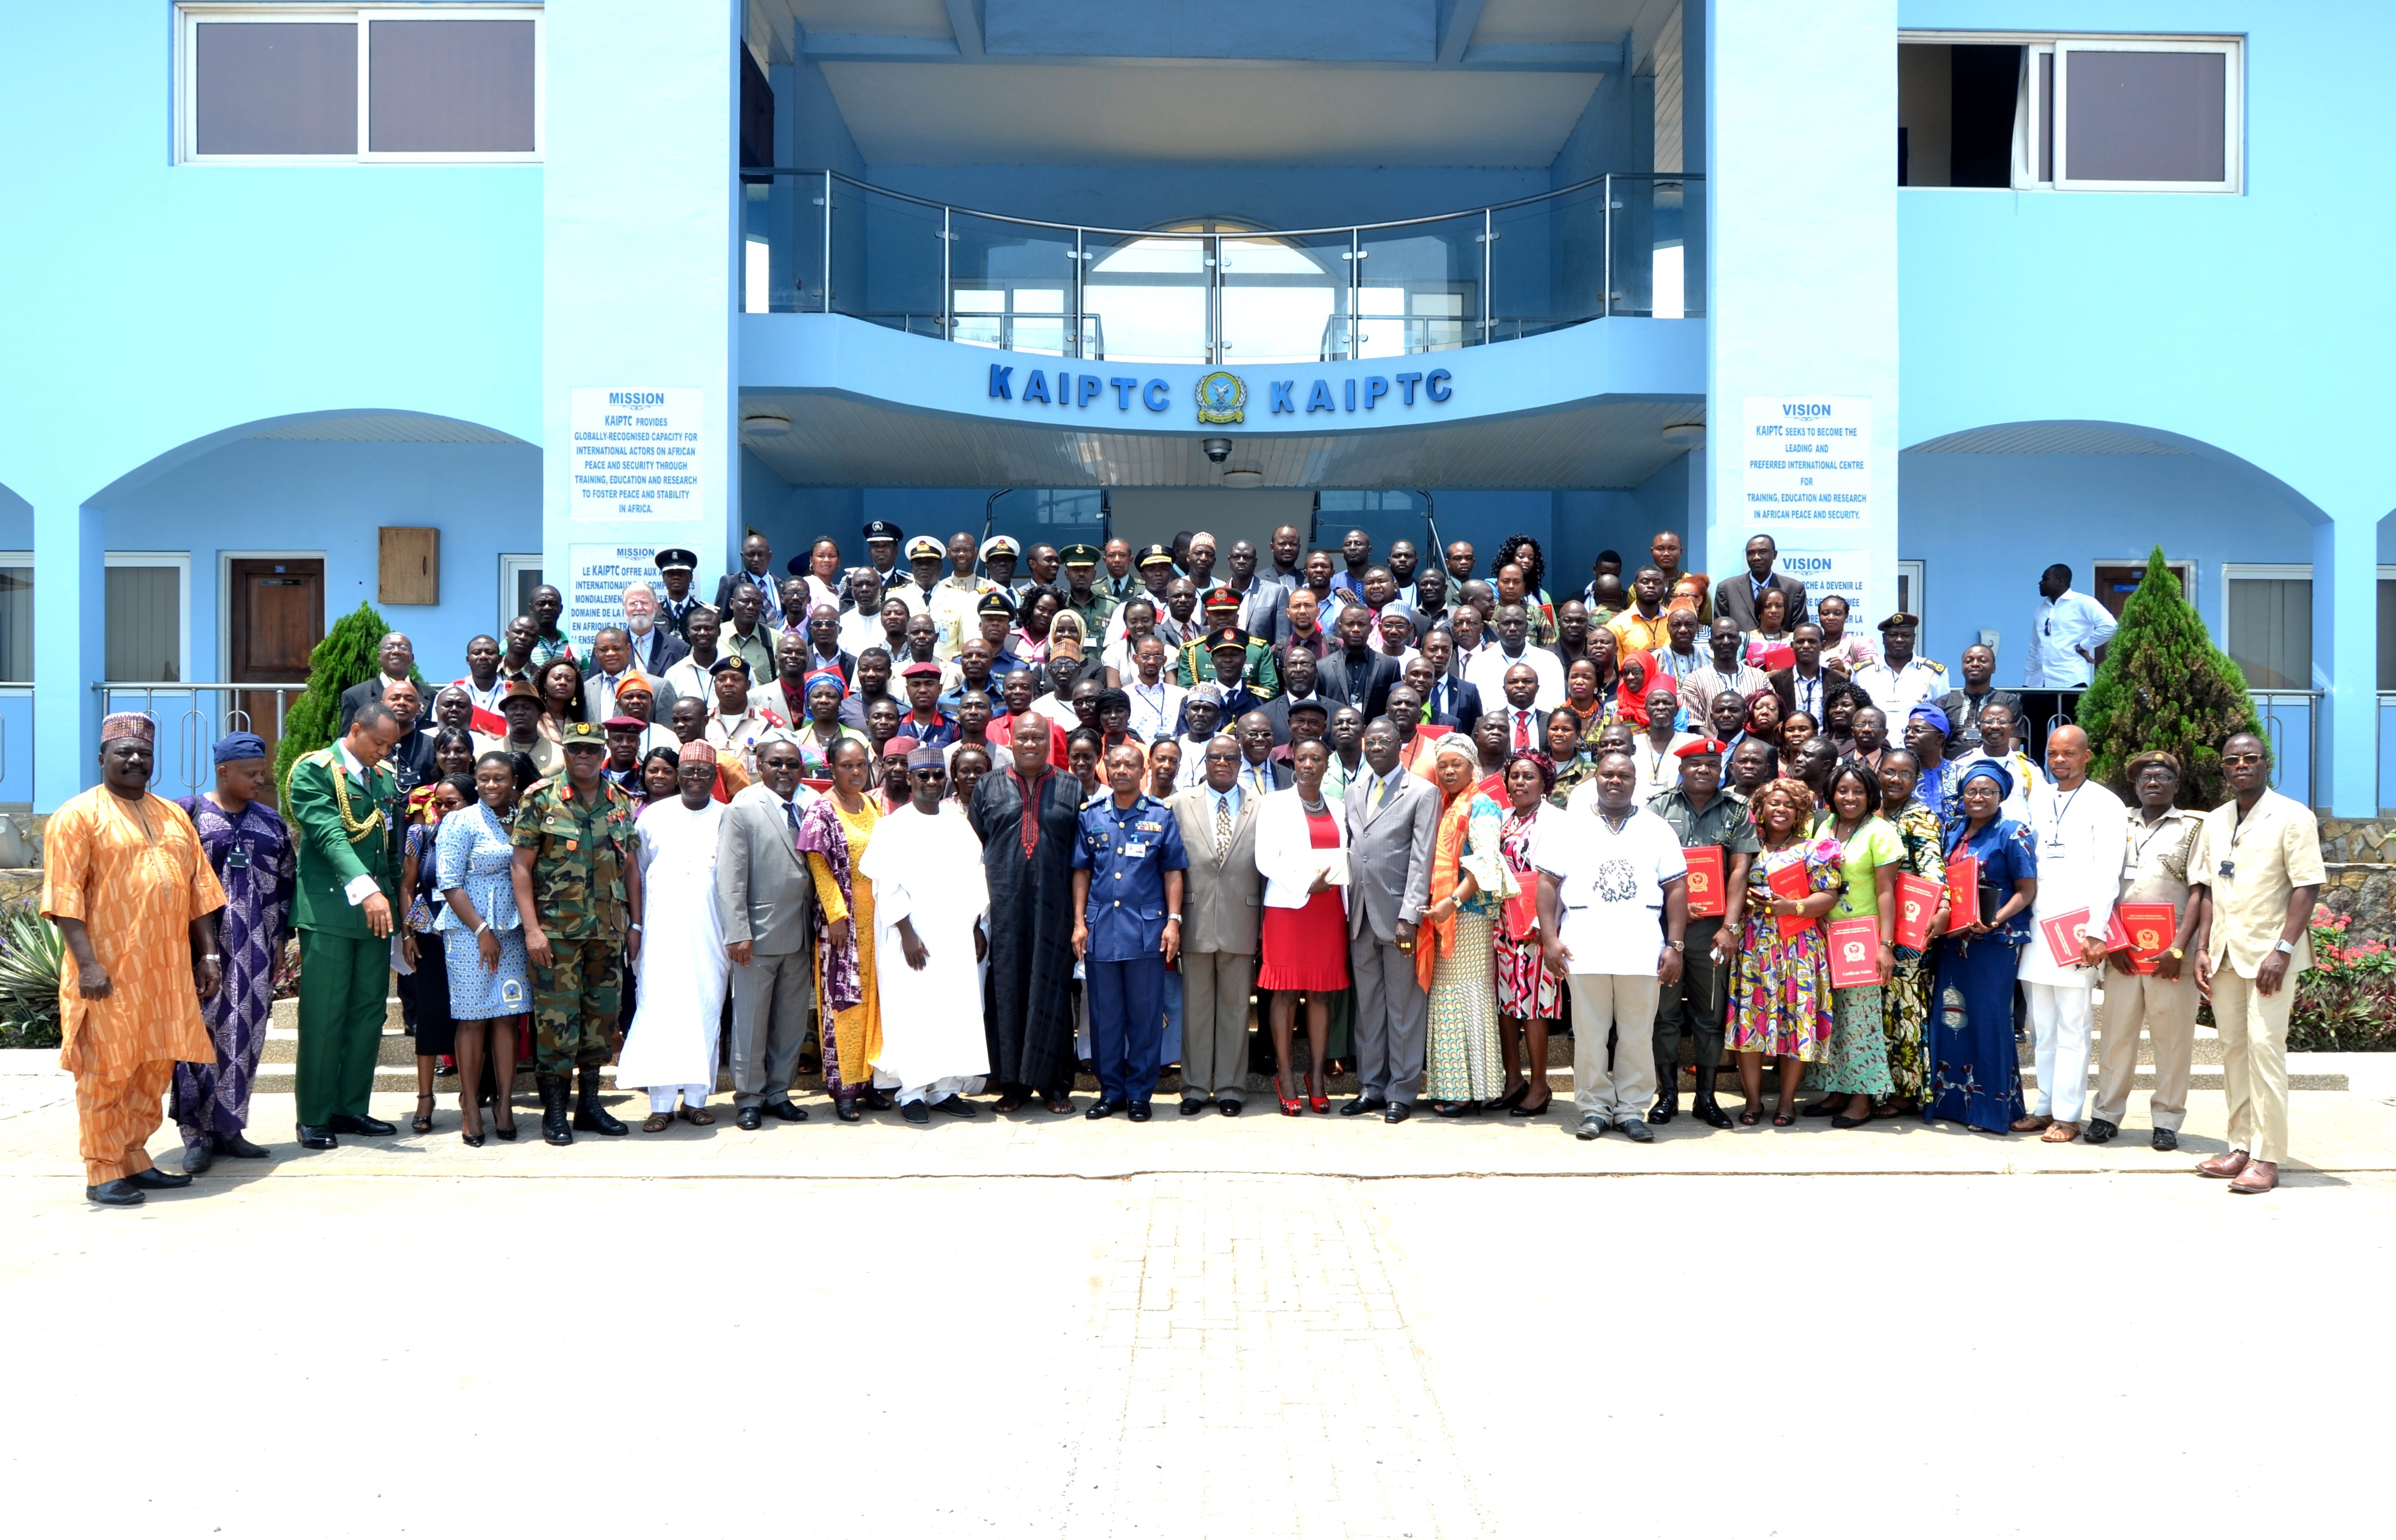 Graduates of the 7th West Africa Disaster Preparedness Initiative (WADPI) course pose with faculty and senior government officials from Liberia, Nigeria and Ghana at the Kofi Annan International Peacekeeping Training Centre (KAIPTC) in Accra, Ghana, Sept. 18, 2015.  Funded by U.S. AFRICOM and executed by KAIPTC, the National Disaster  Management Organization (NADMO) of Ghana, and the Economic Community of West African States (ECOWAS), WADPI aims to strengthen national capacities in disaster preparedness, response and management among 17 African Partner Nations, primarily ECOWAS member states, and Mauritania, Chad and Cameroon. (Photo by the KAIPTC-WADPI Communications Team/Released)